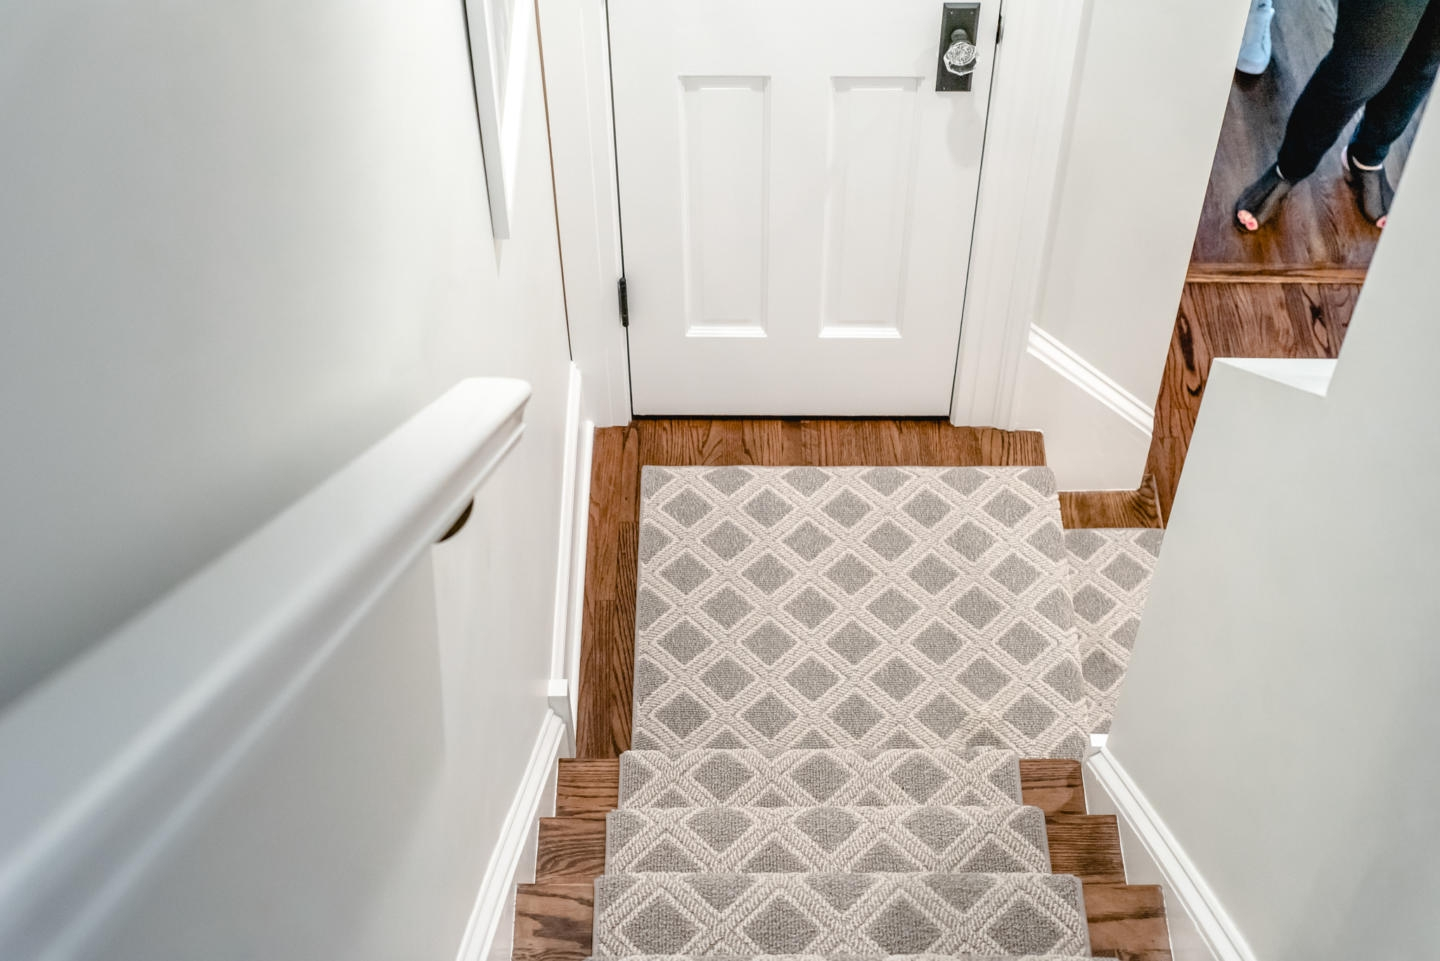 Stair Carpet Gain Inspiration And View Stair Carpet Projects   Modern Carpet Runners For Stairs   Step Sculptured Color   Pinterest   Curved   Light Grey   Victorian